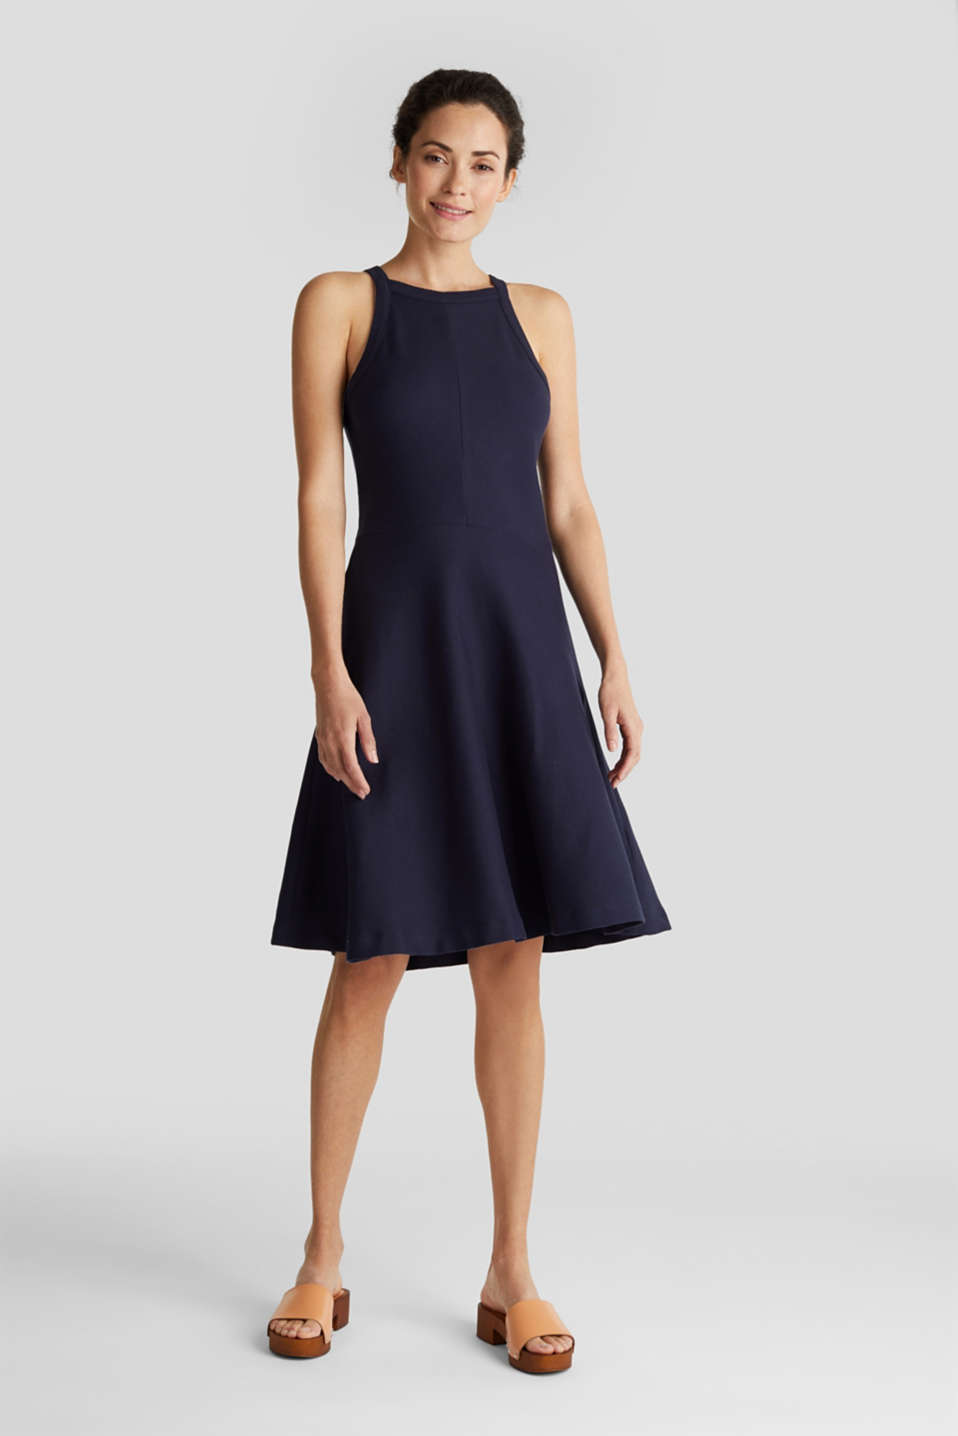 Ribbed stretch jersey dress, NAVY, detail image number 1